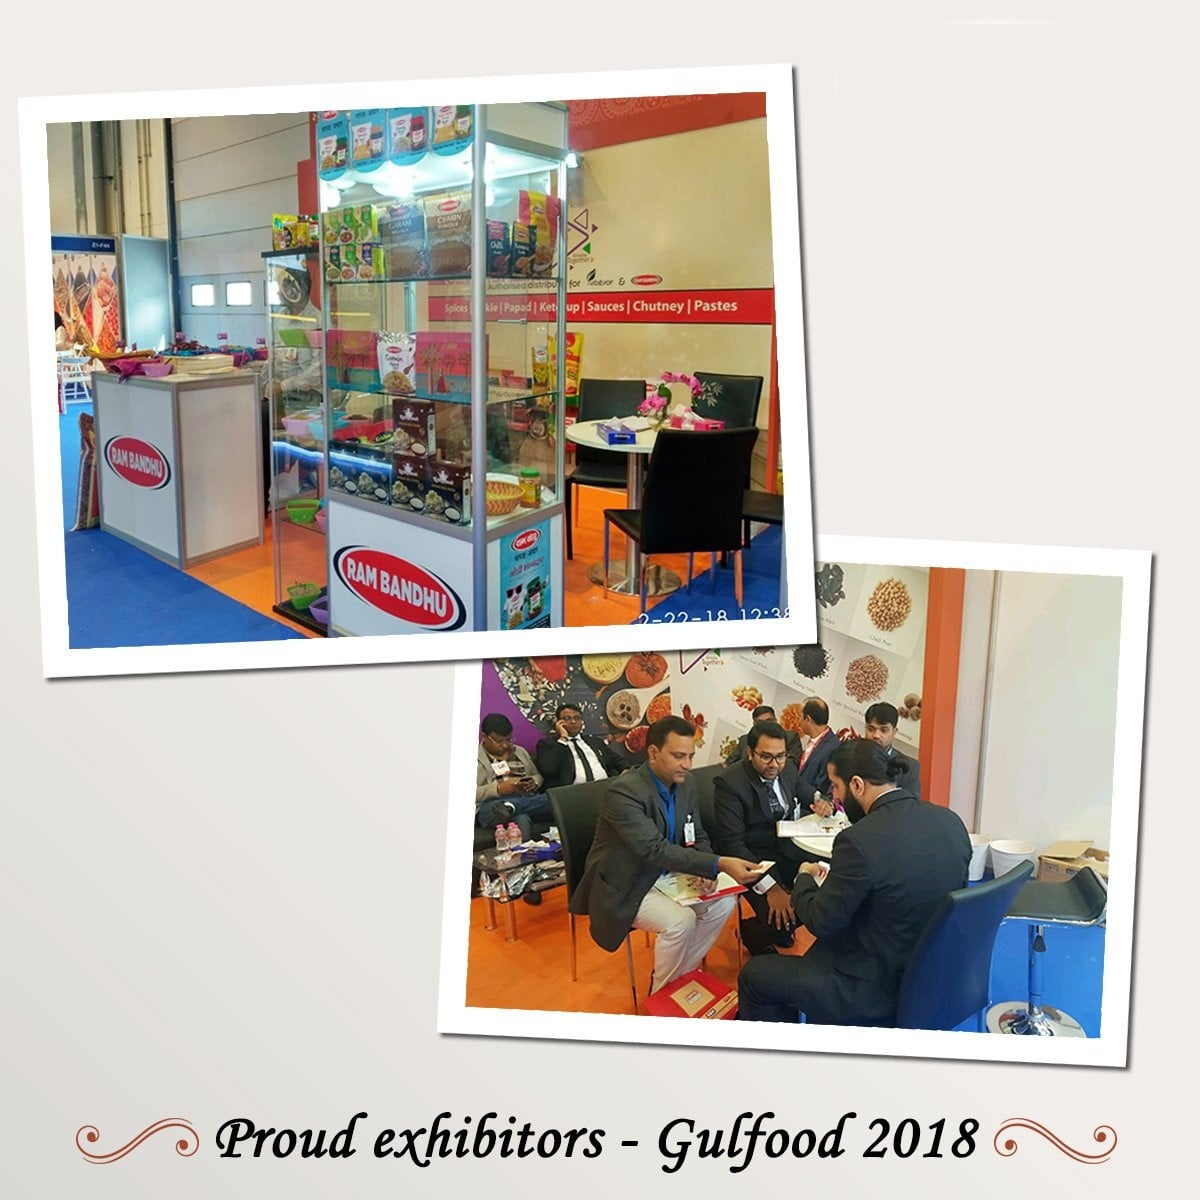 Exhibitor - Gulfood 2018, Dubai